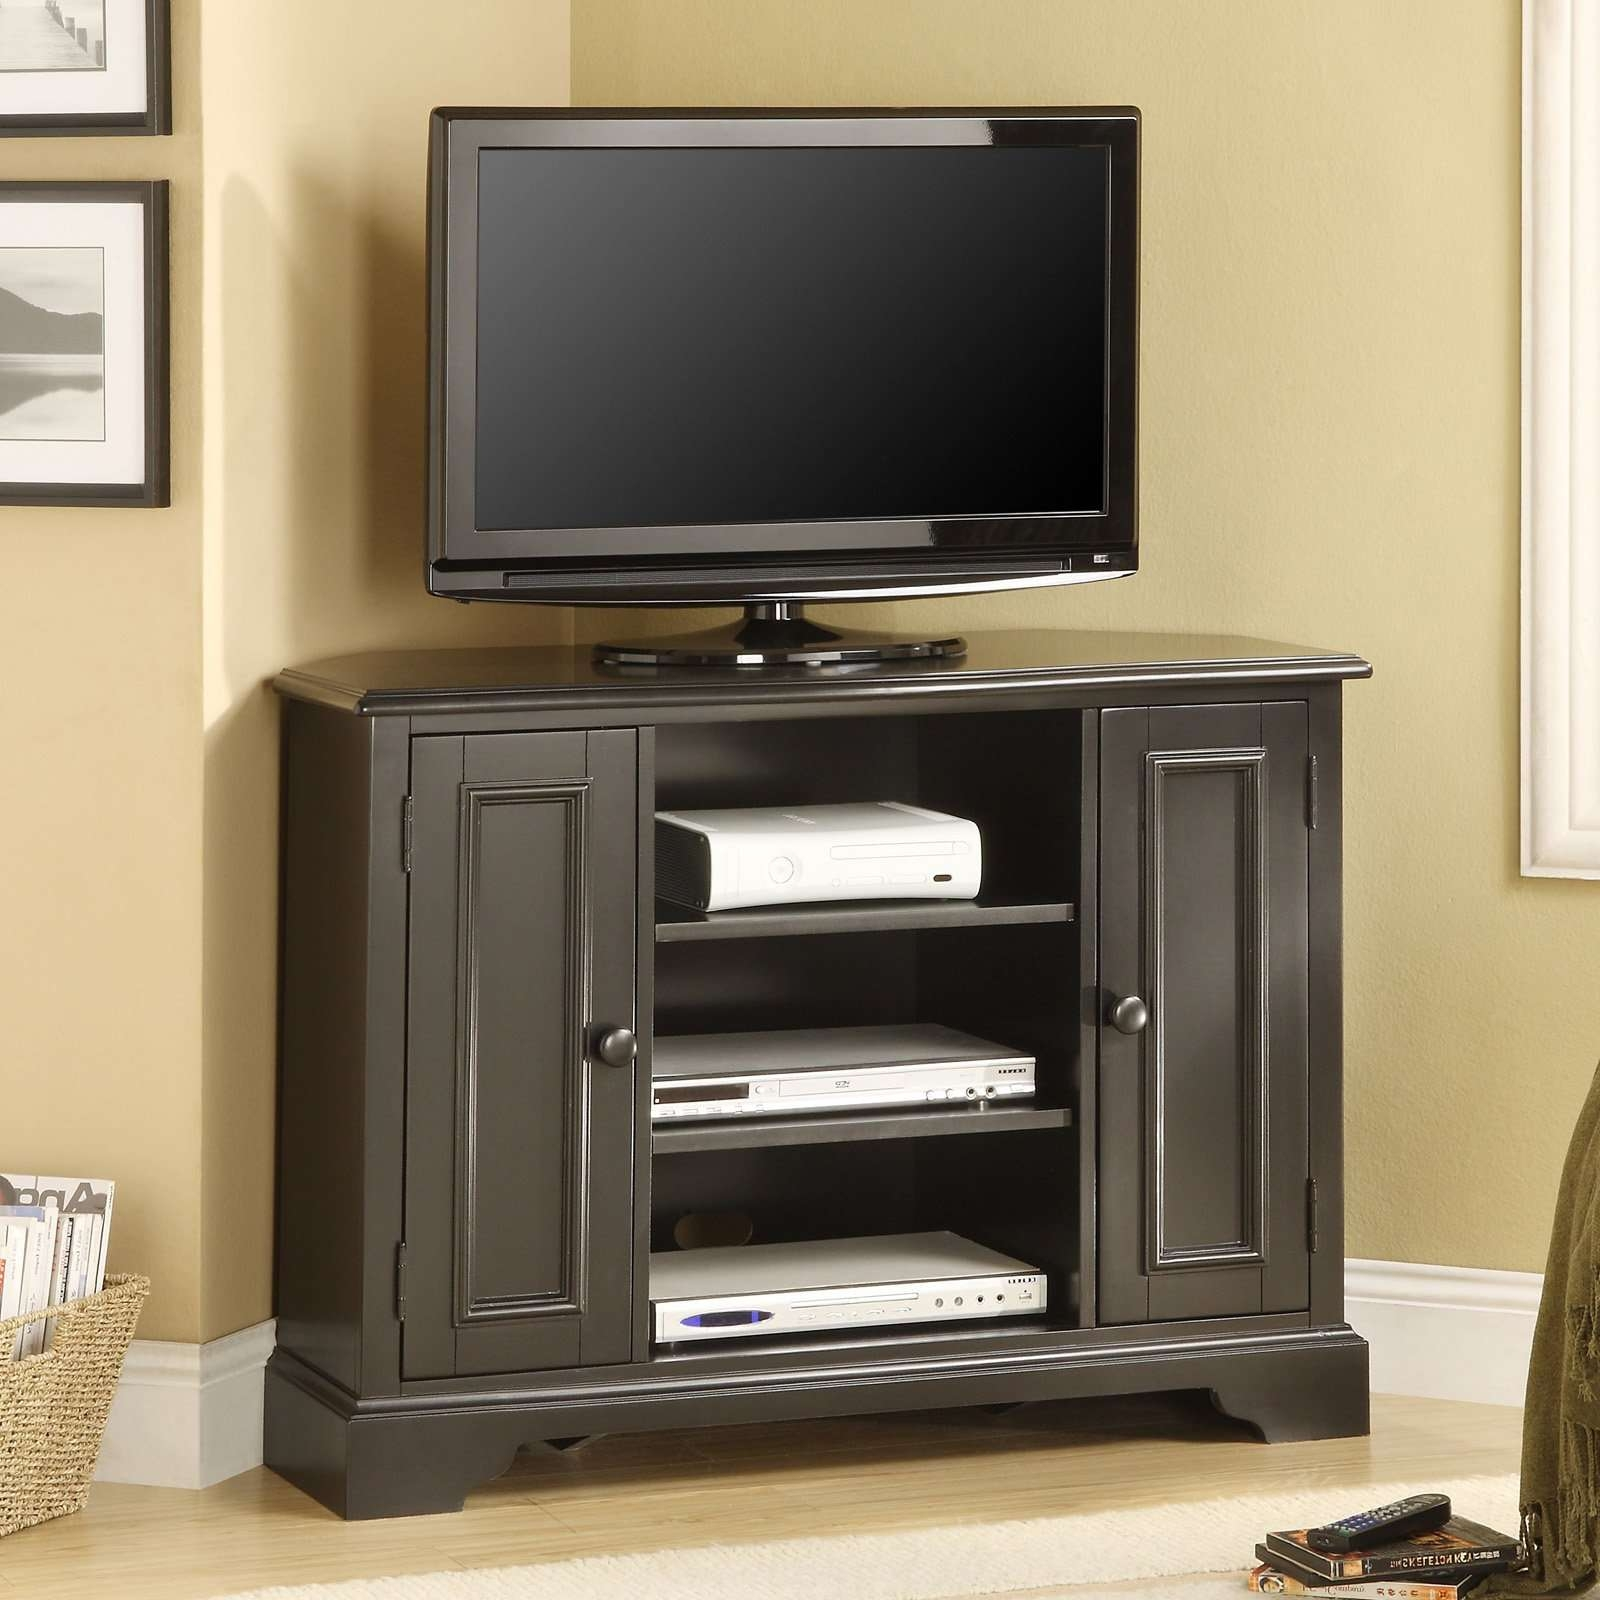 Black Melamine Finished Solid Wood Tall Corner Tv Stand For In Black Wood Corner Tv Stands (View 9 of 15)